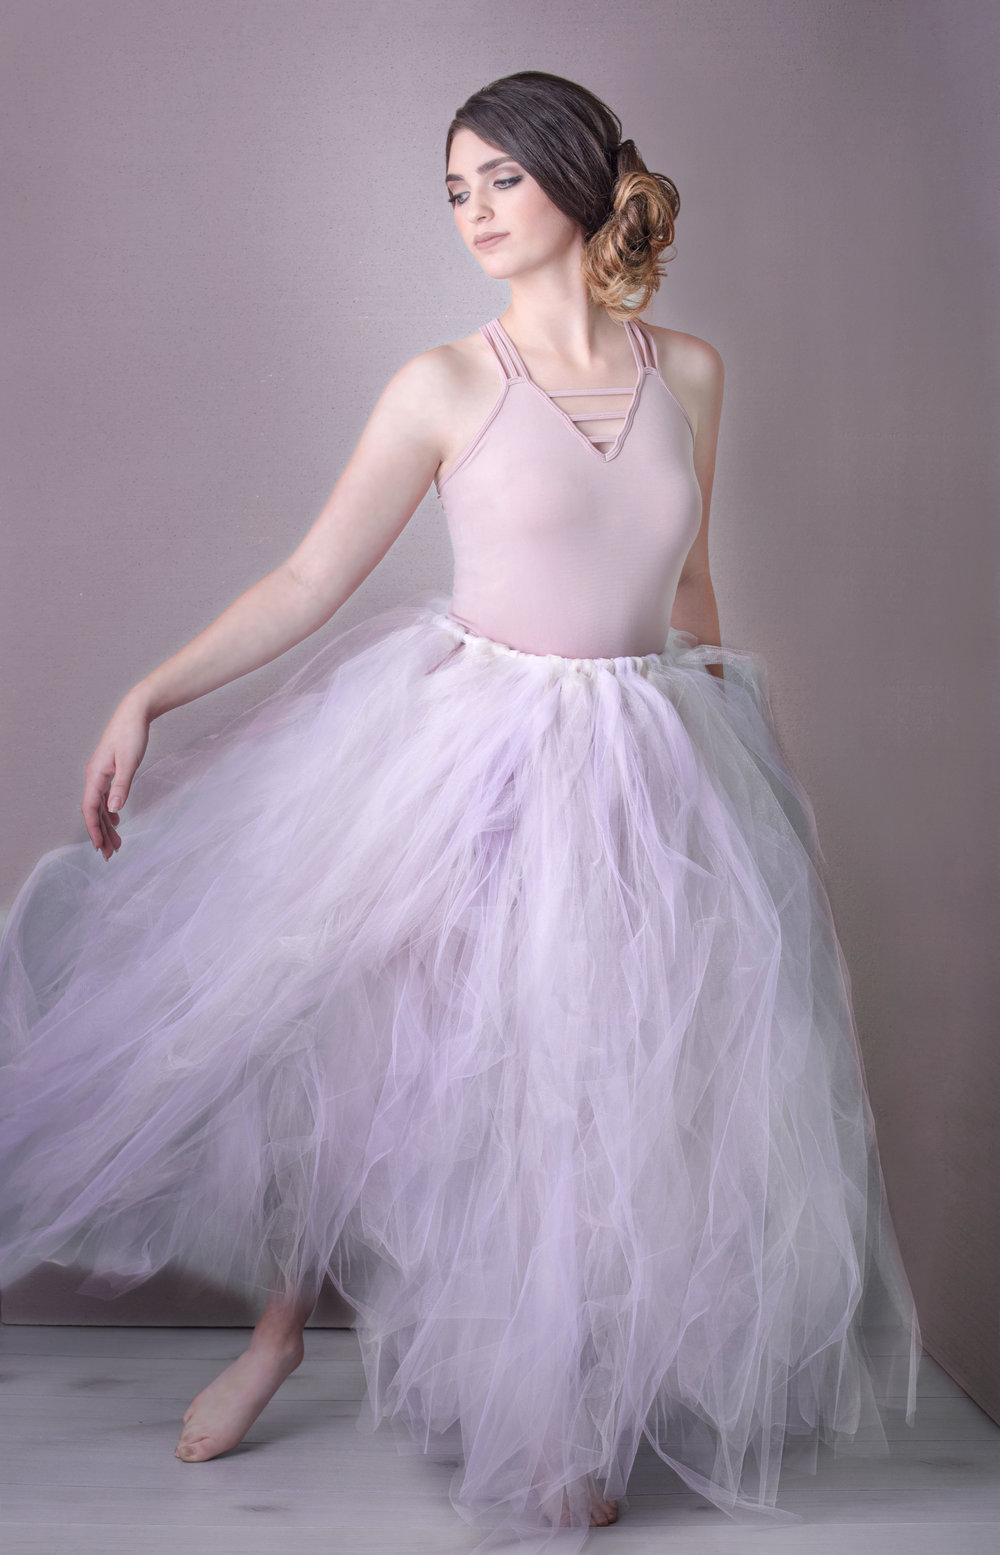 Dancer Portrait in Tulle Skirt Key West Photography Studio.jpg